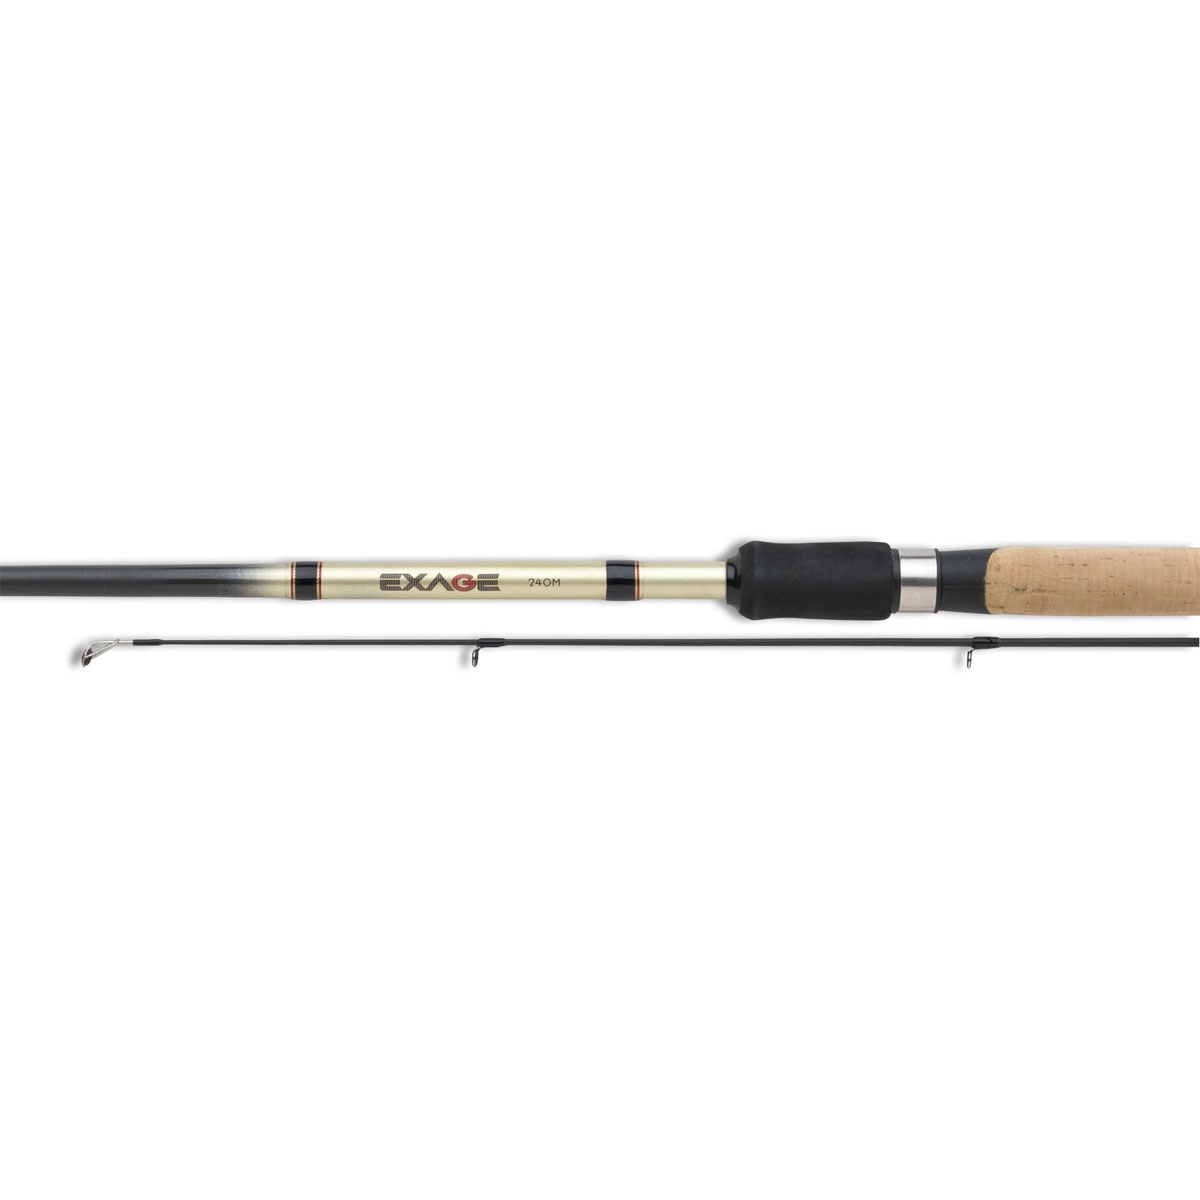 Shimano Exage Spinning Rod 8ft 14 40g